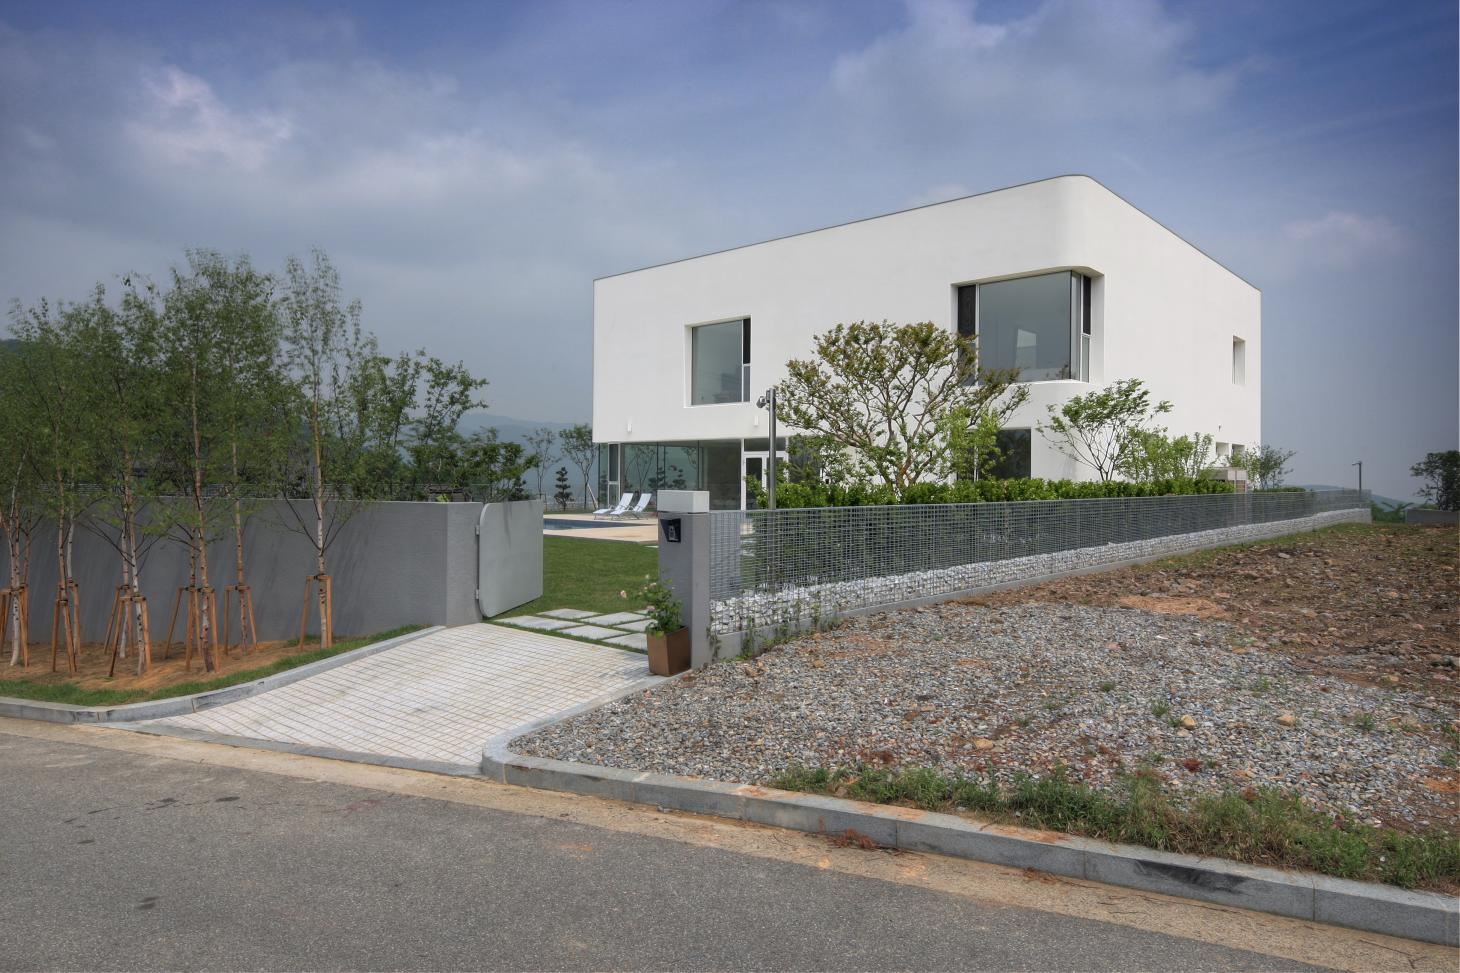 defined by a white boxy composition with curved corners this is Korea's Rounded House